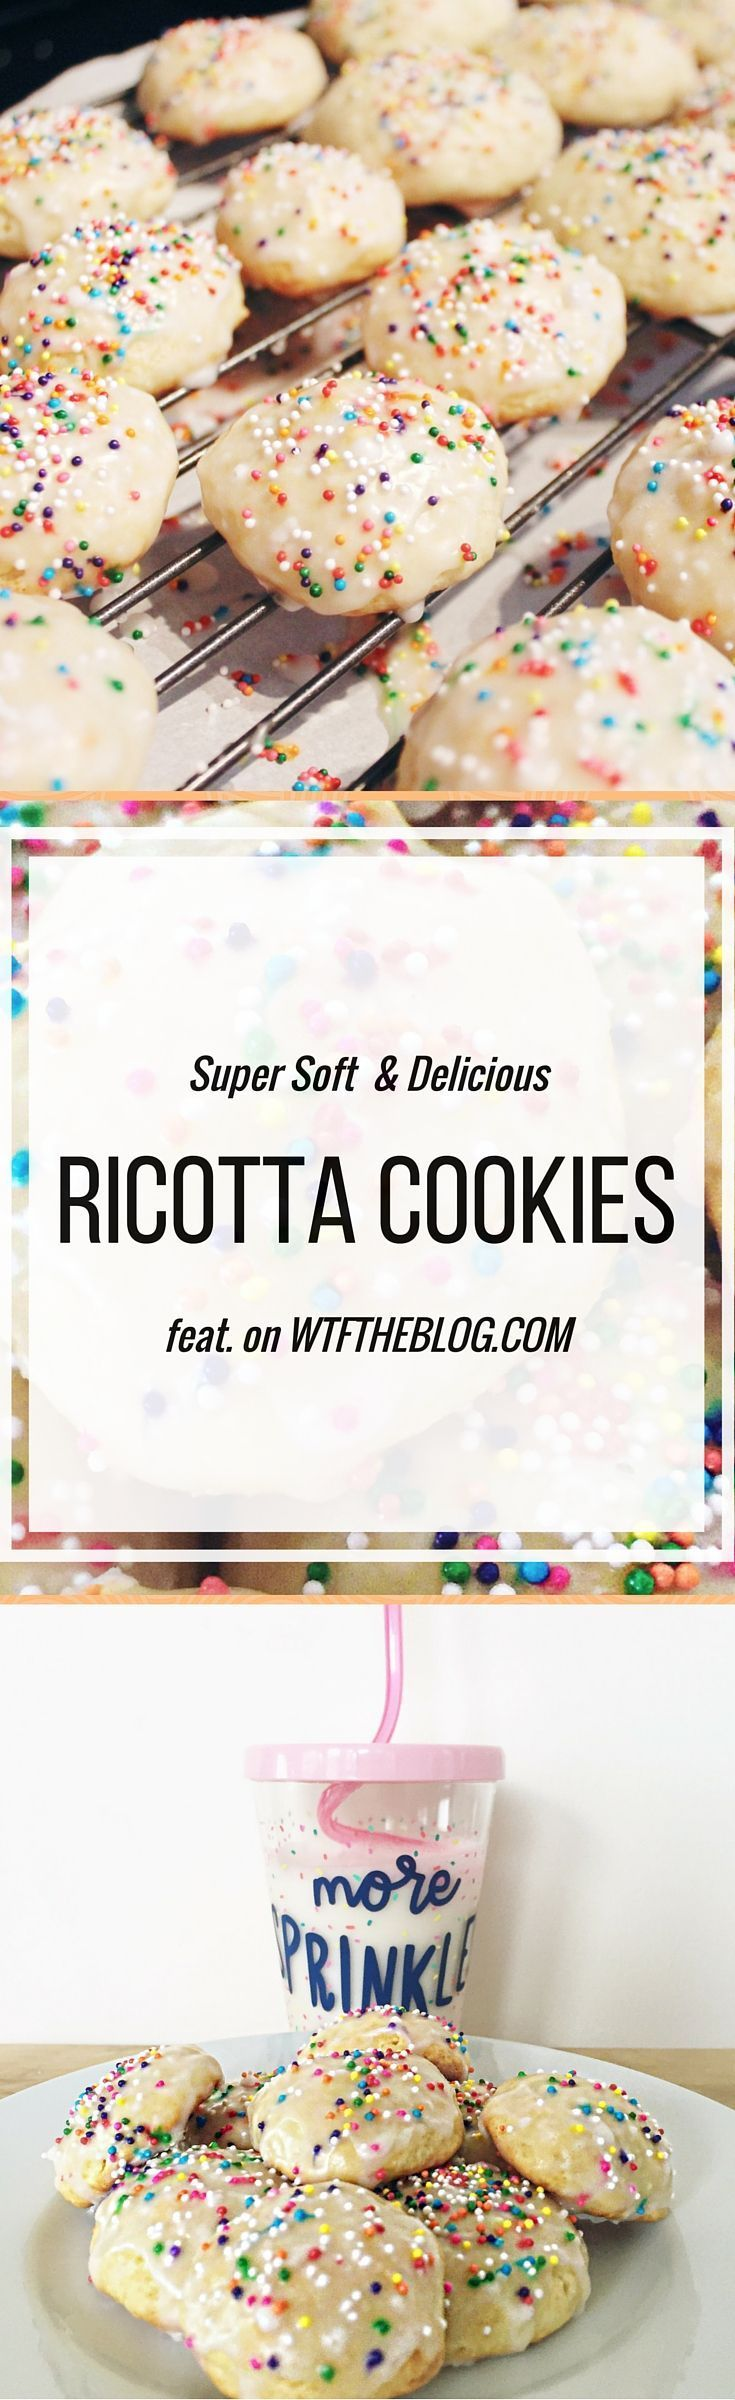 These Italian ricotta cookies are so soft and light and just melt in your mouth. They are topped with almond icing and sprinkles for mouth watering flavor.